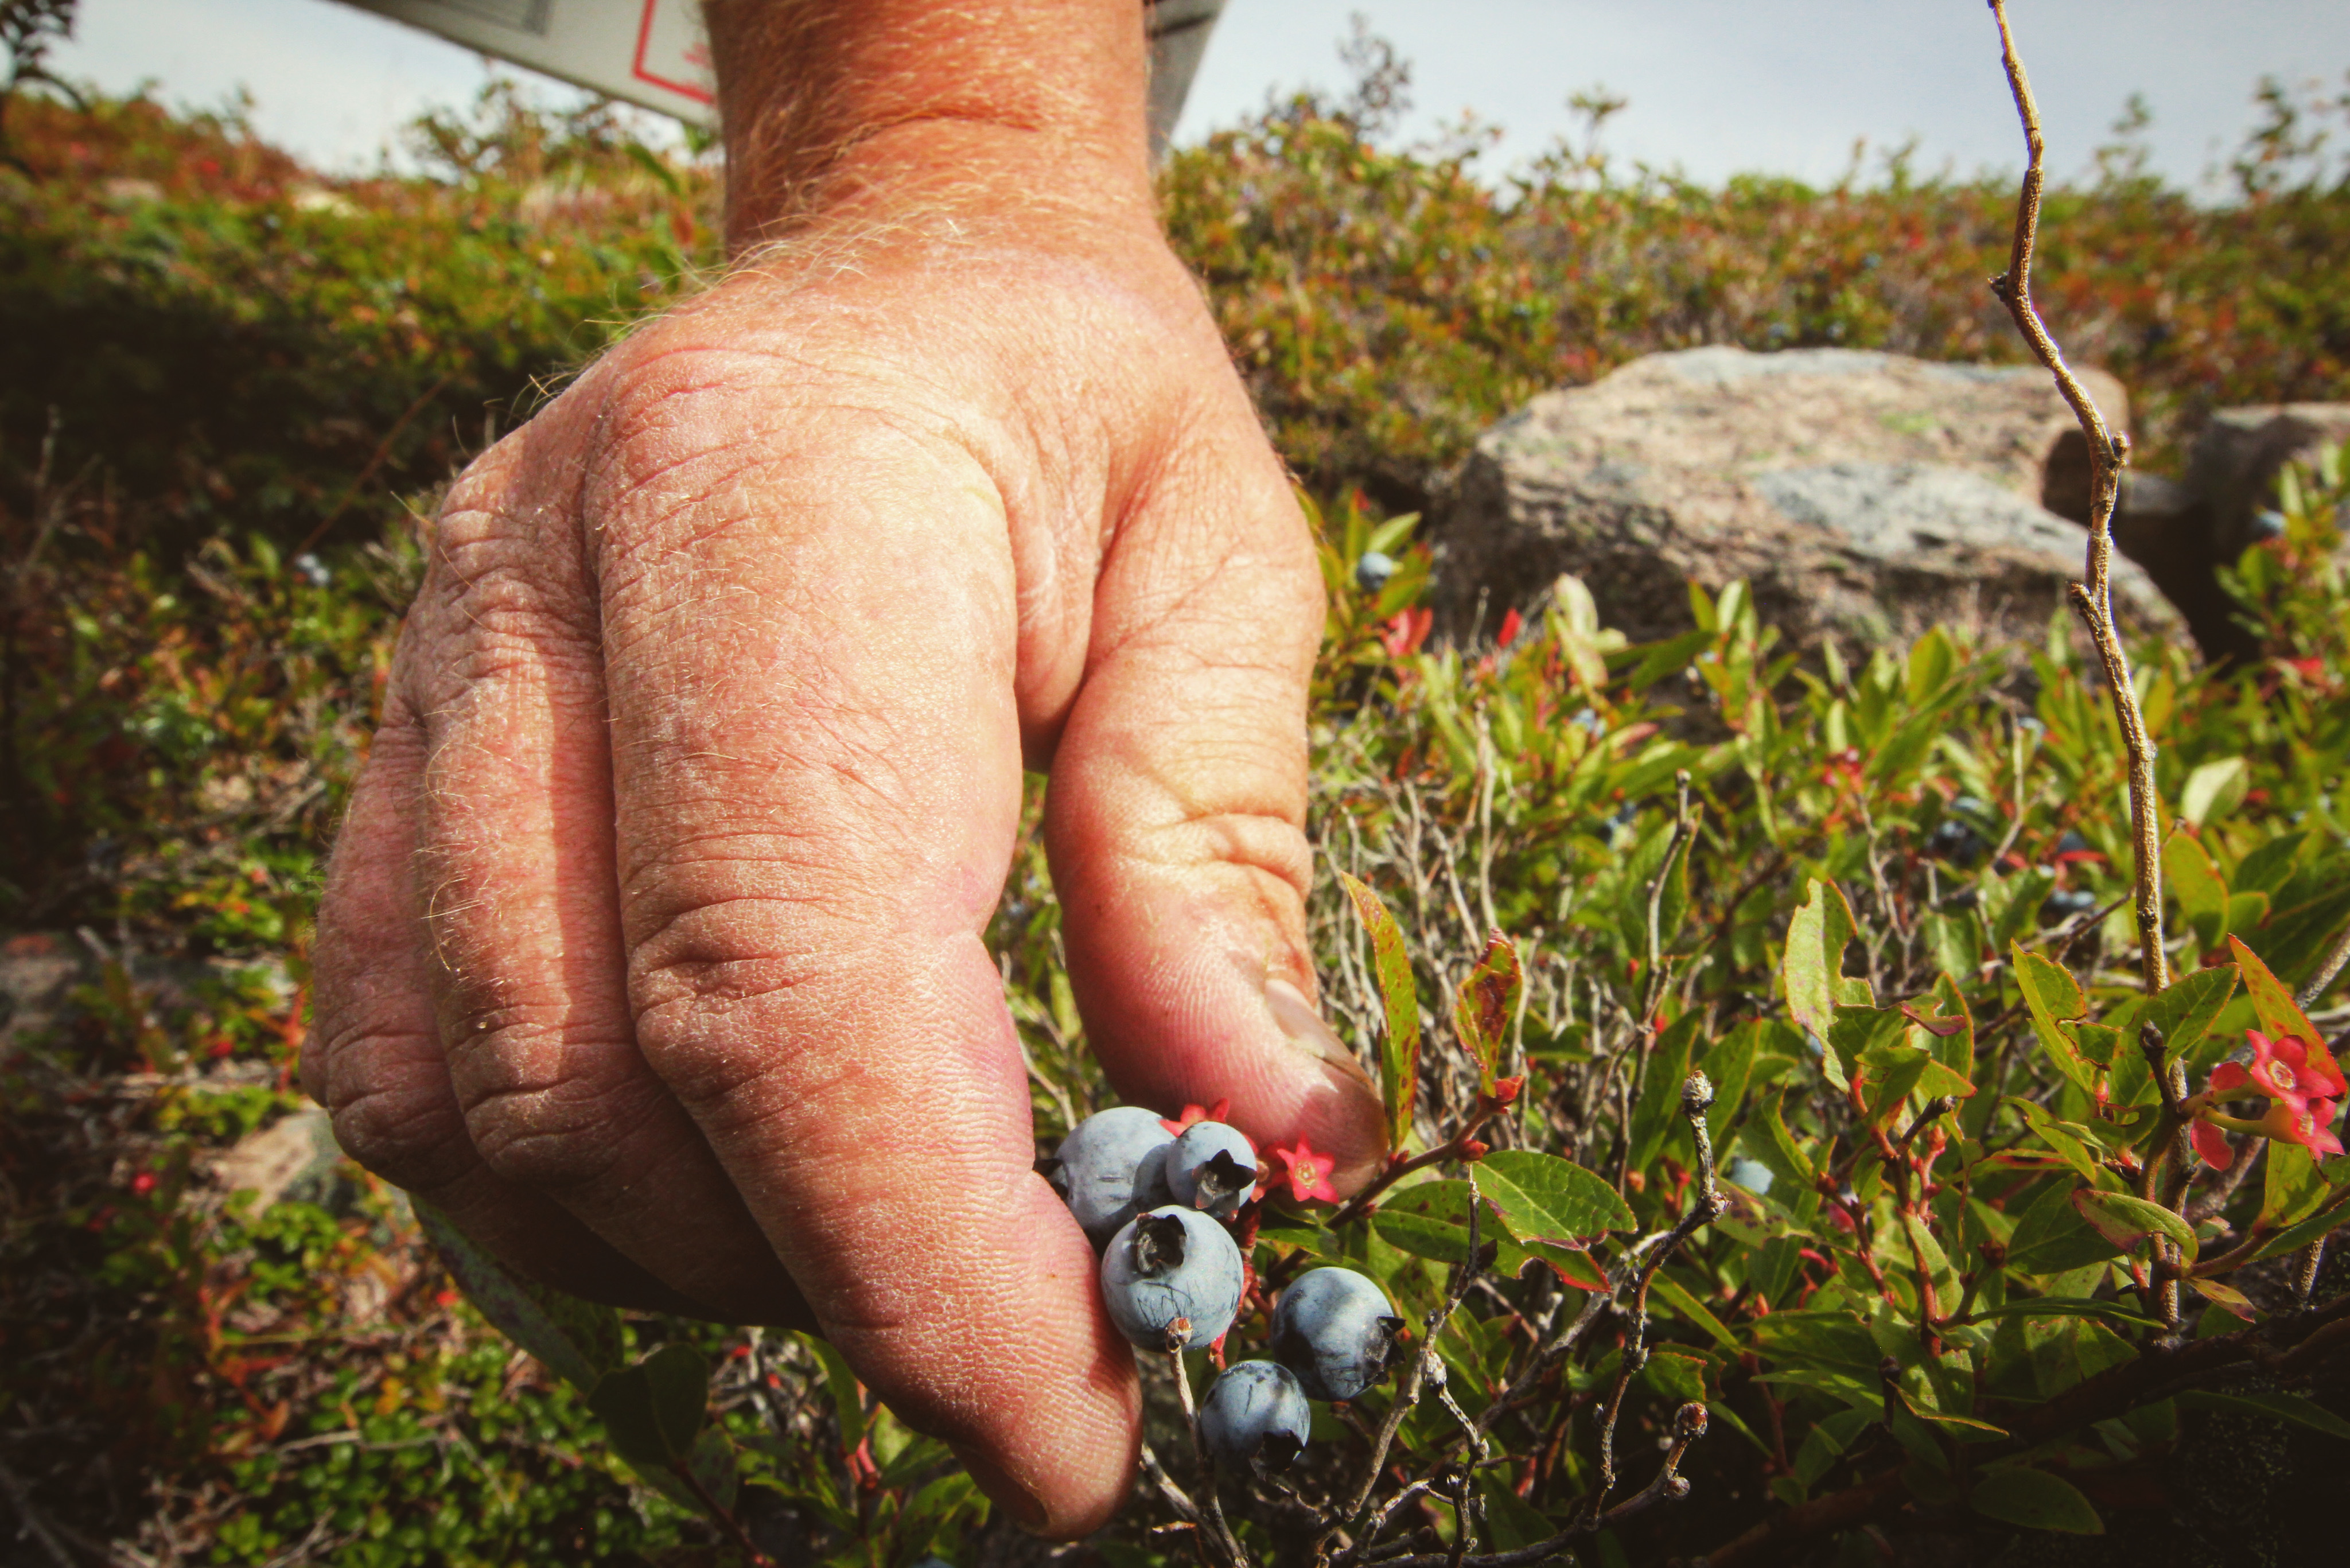 Rowbottom picks berries along the shores of St. John's every day in the summer and fall, rain or shine. (Gavin Simms/CBC)